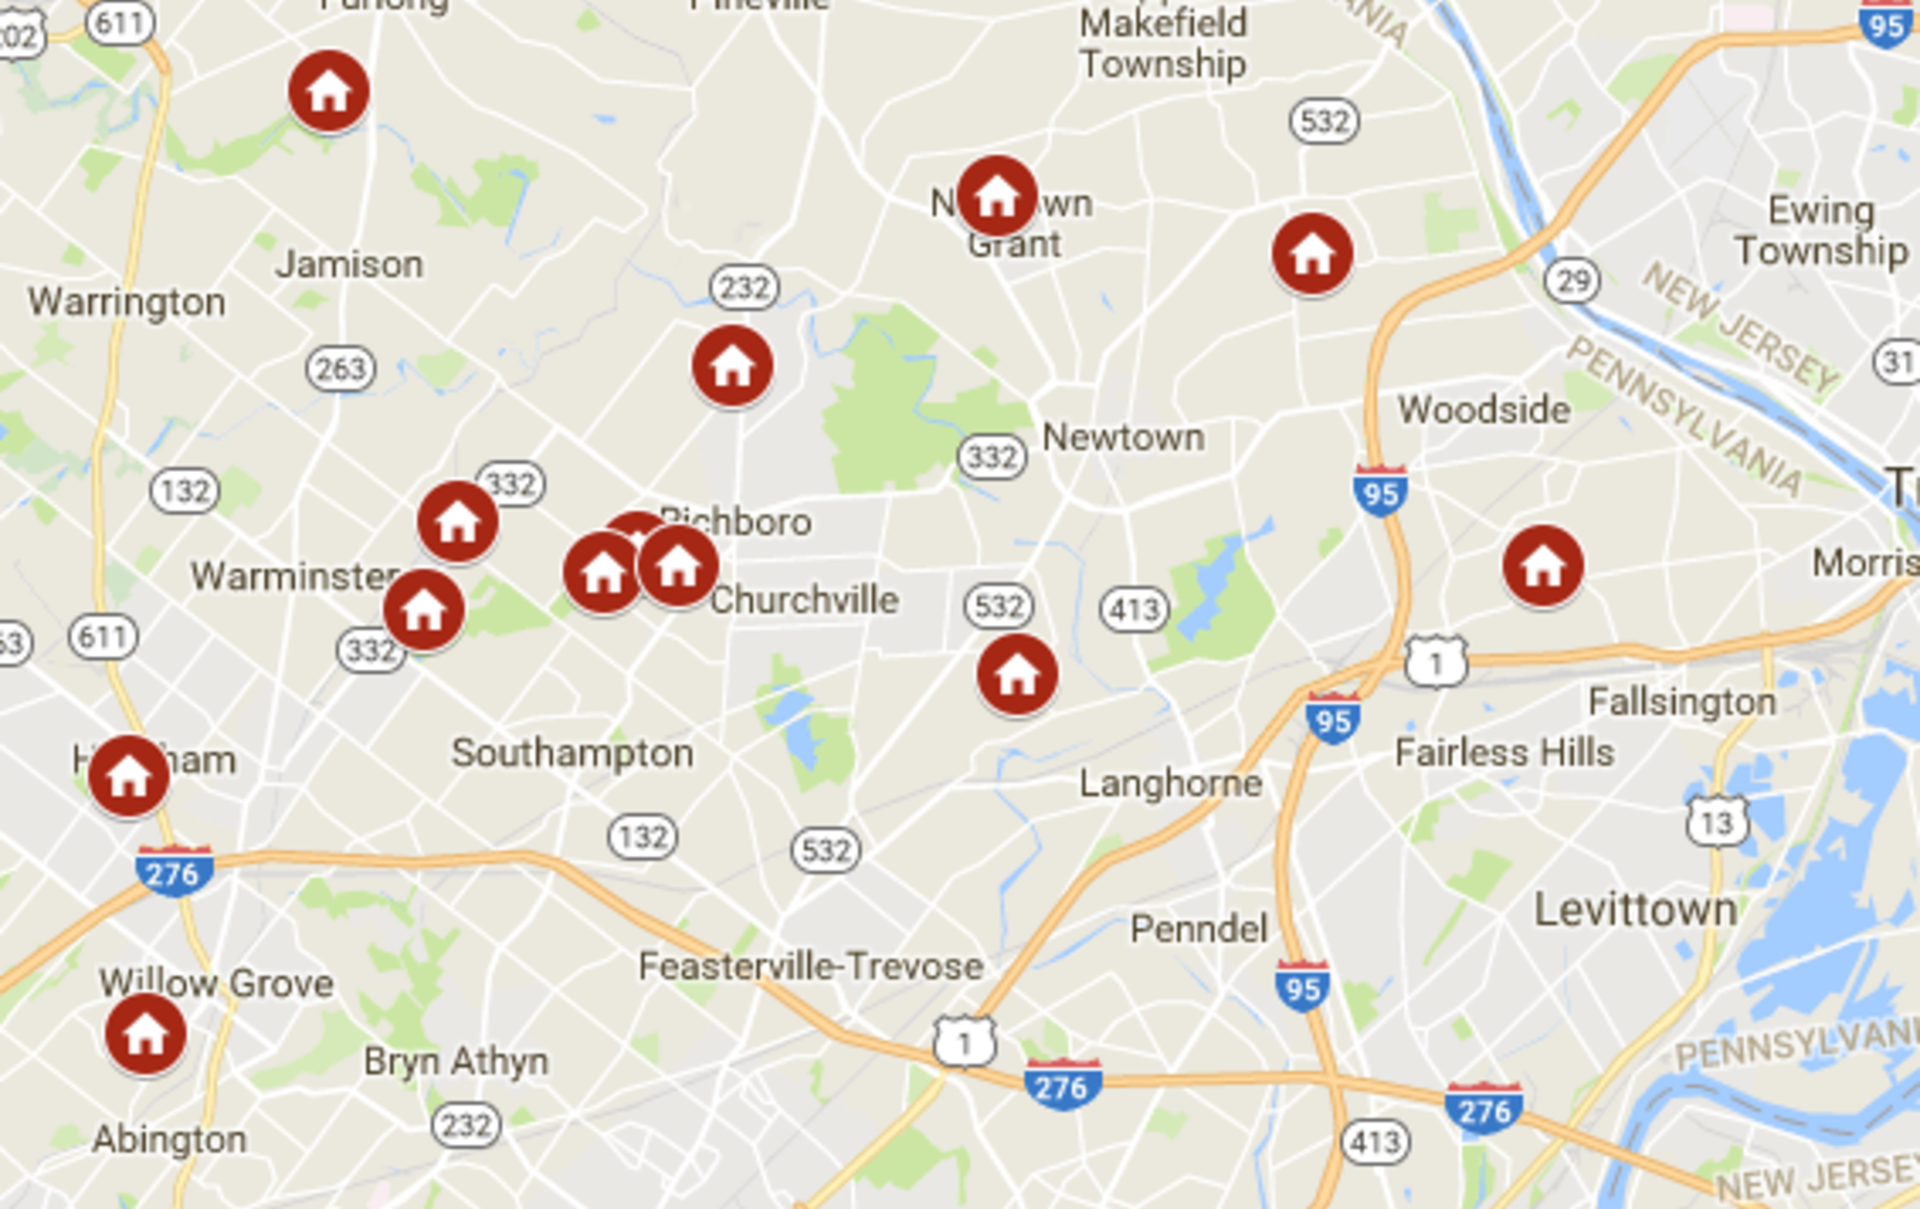 Keller Williams Newtown Open Houses June 23rd – June 24th